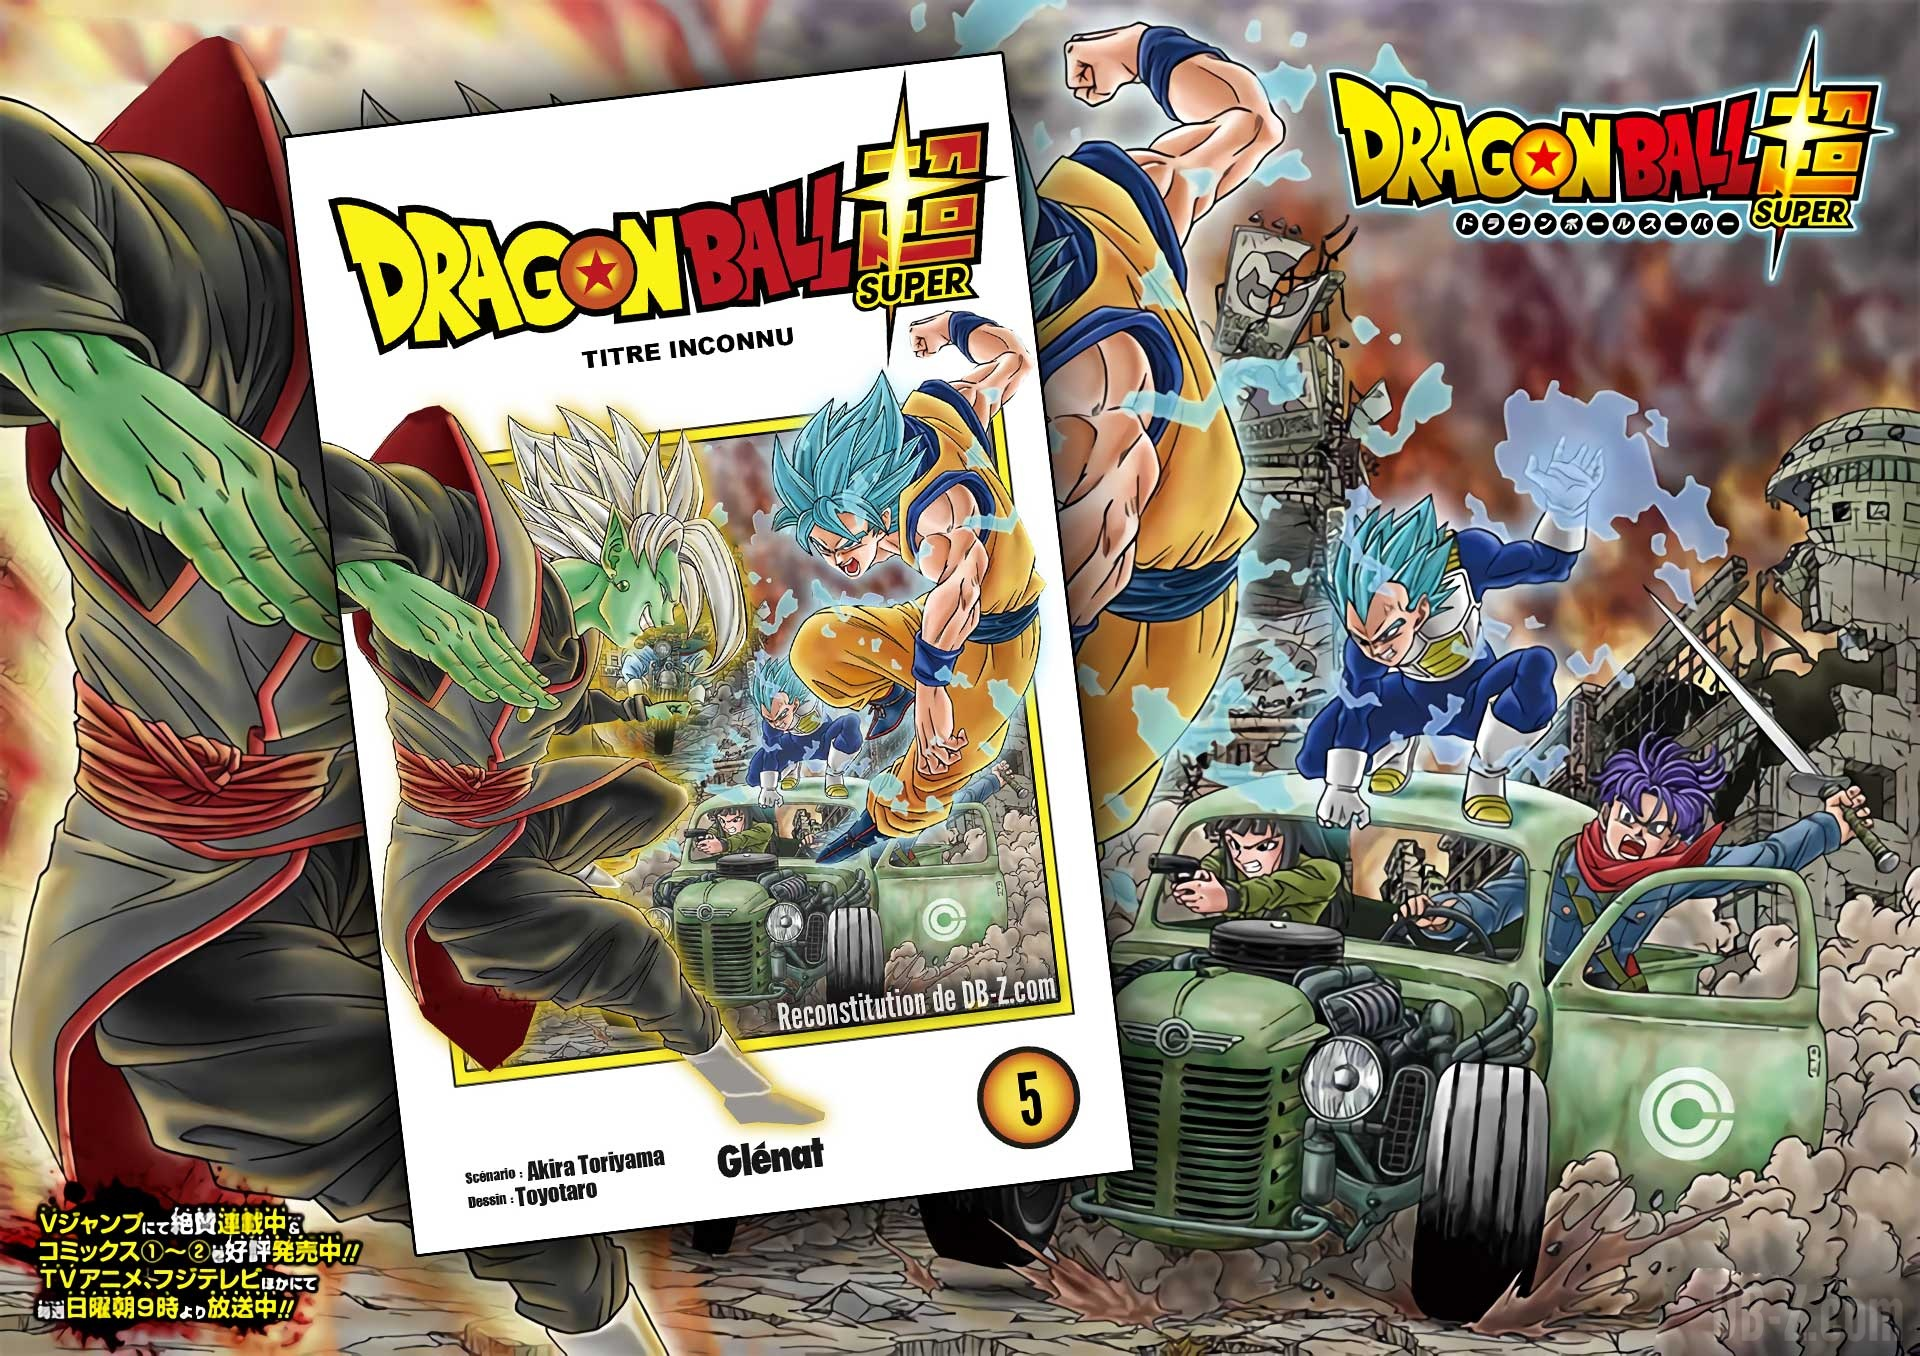 dragon ball super la cover du tome 5 se d voile. Black Bedroom Furniture Sets. Home Design Ideas